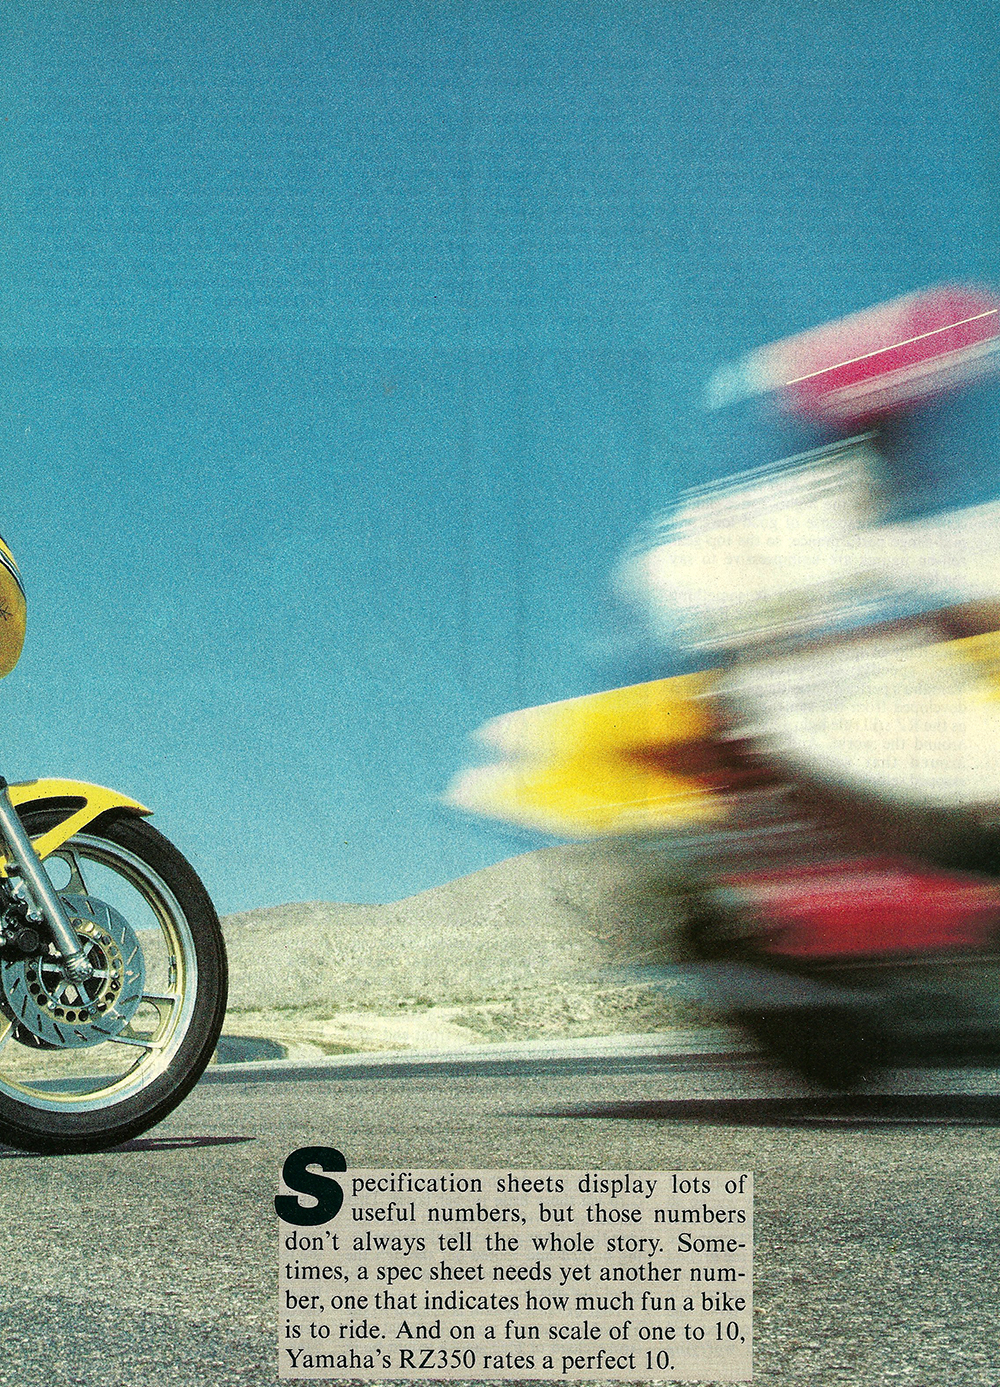 1984 Yamaha RZ350 road test 02.jpg